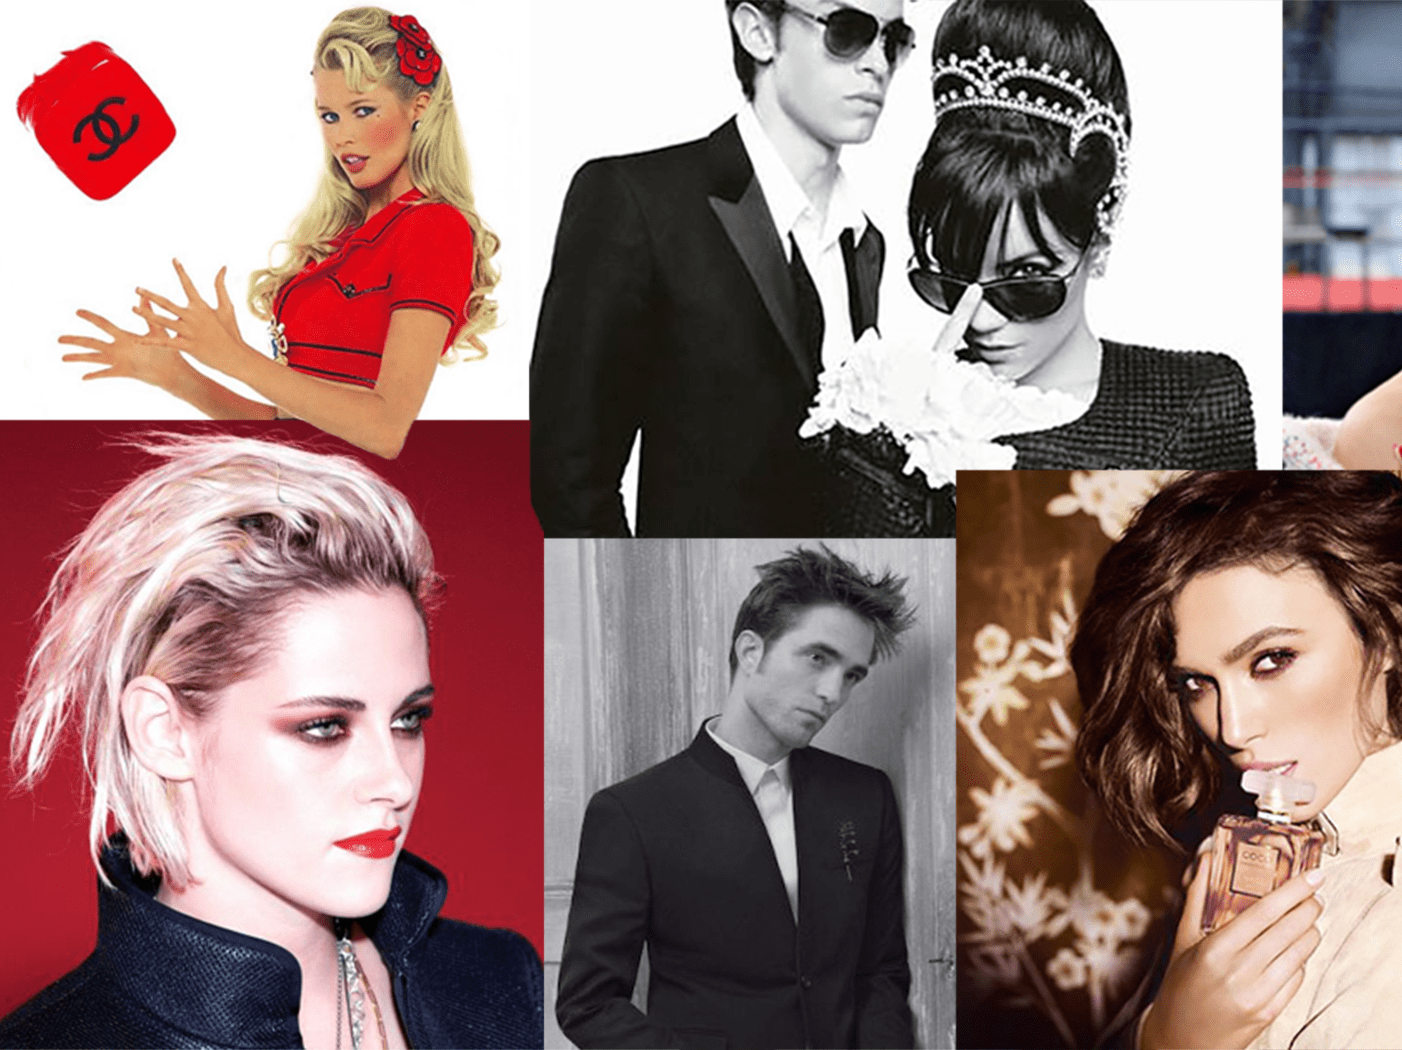 Karl Lagerfeld dead: The designer's most iconic celebrity campaigns with Lily Allen, Kendall Jenner and Kate Moss